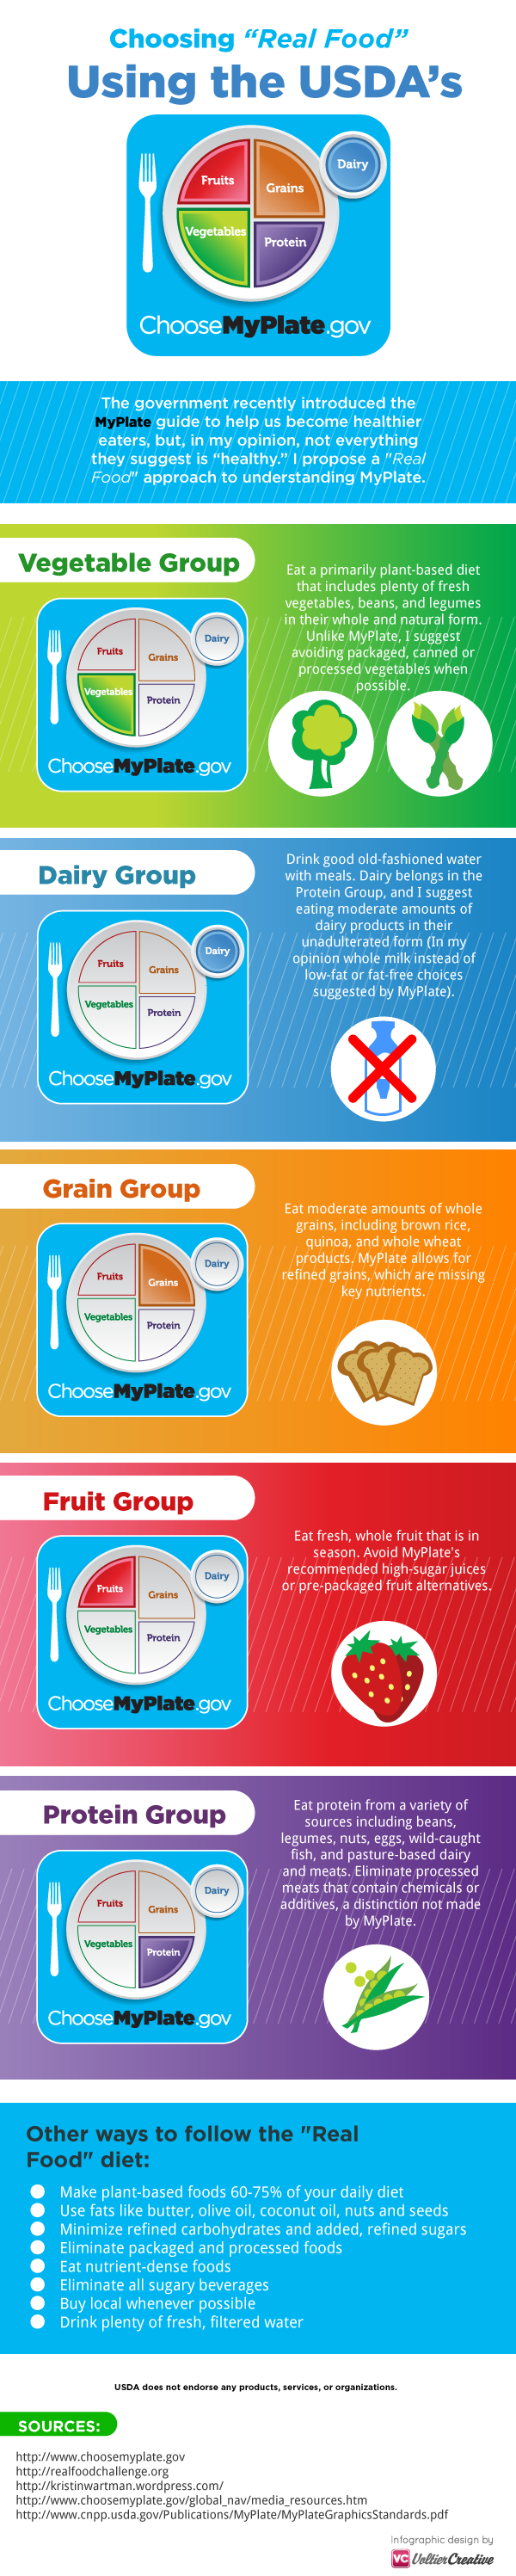 choosing real food infographic